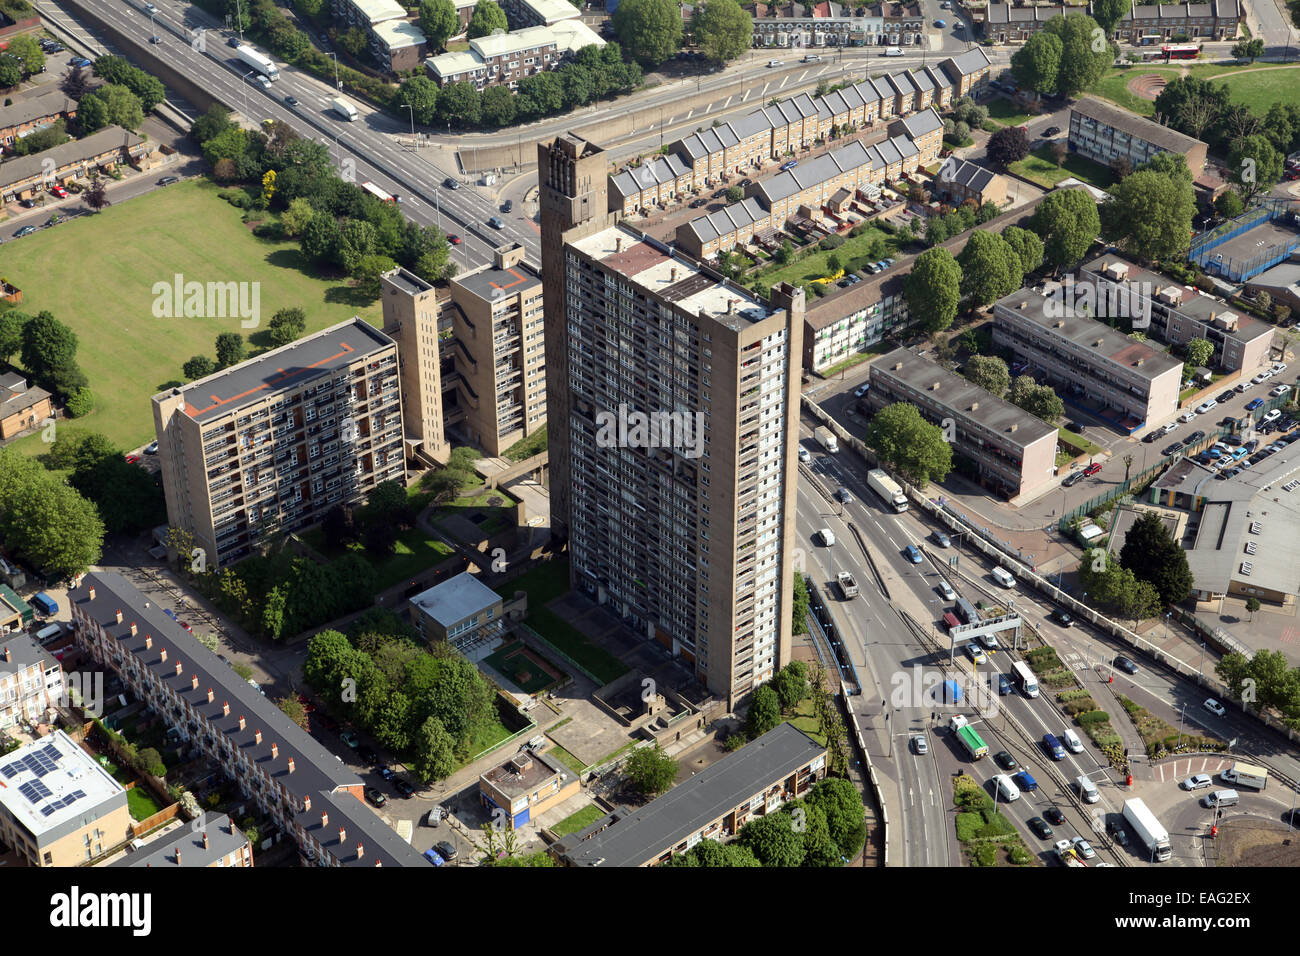 aerial view of Balfron Tower in Poplar, East London - Stock Image